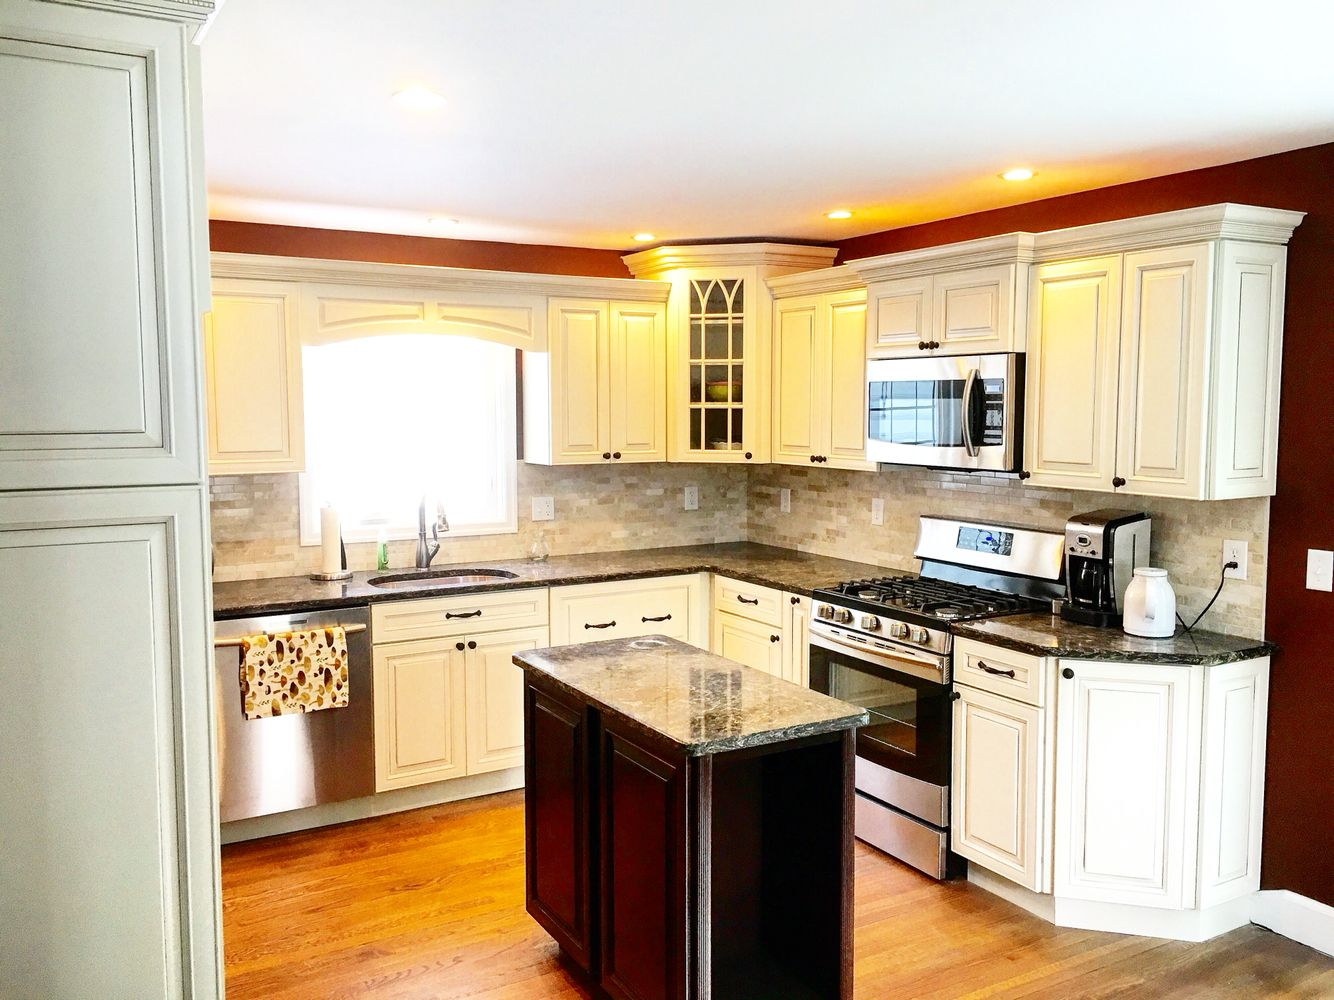 A beautiful kitchen install from north Wilmington